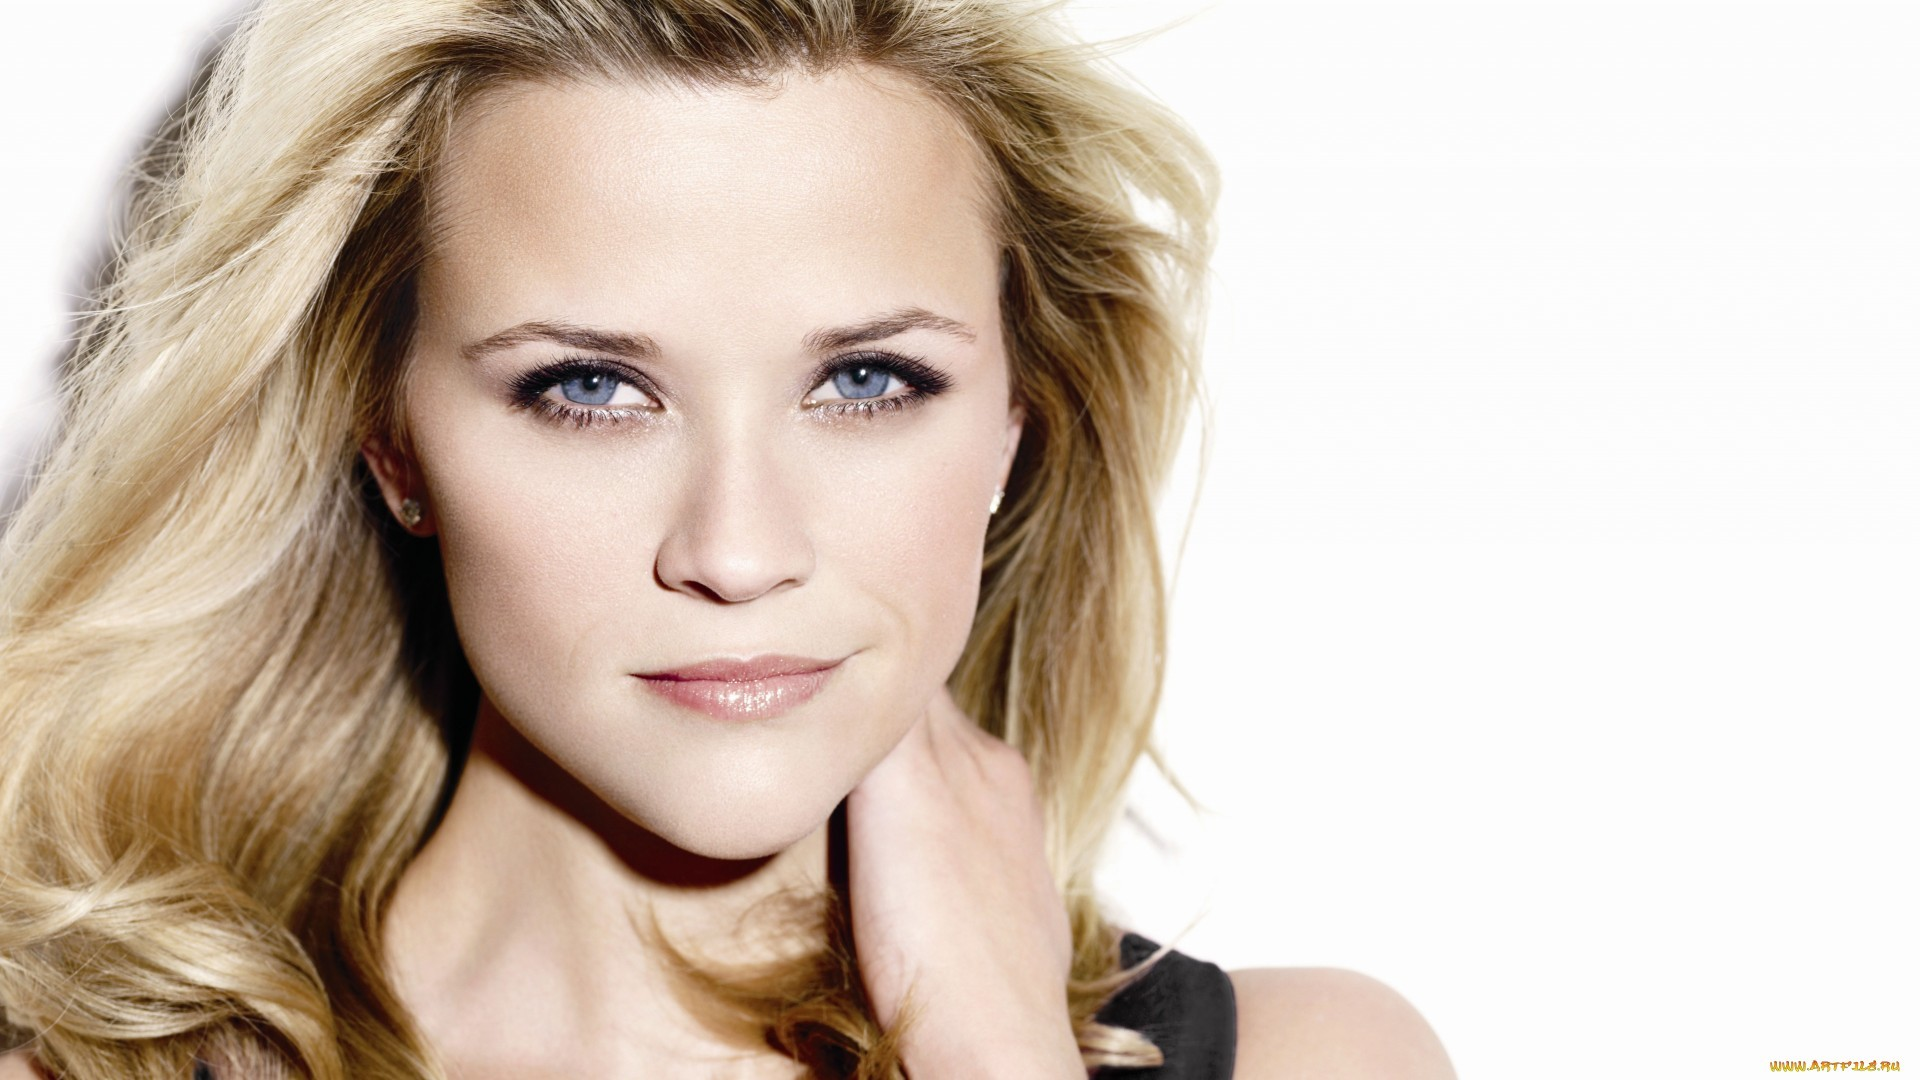 Reese-Witherspoon-Wallpaper-4 jpg Reese Witherspoon